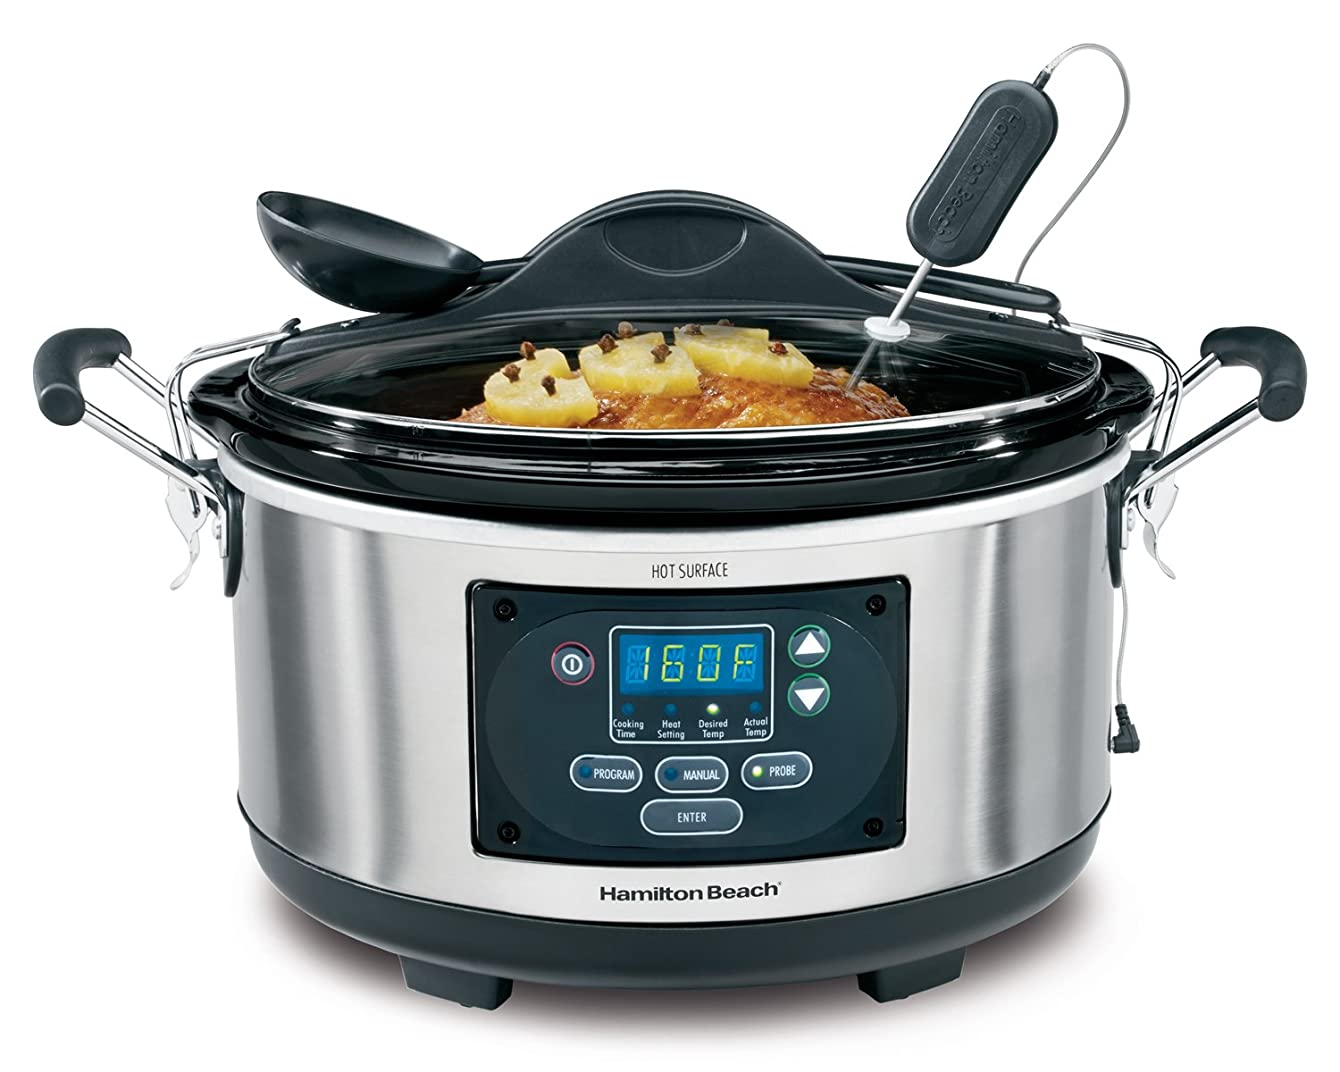 Hamilton Beach Set 'n Forget Programmable Slow Cooker With Temperature Probe, 6-Quart (33967)